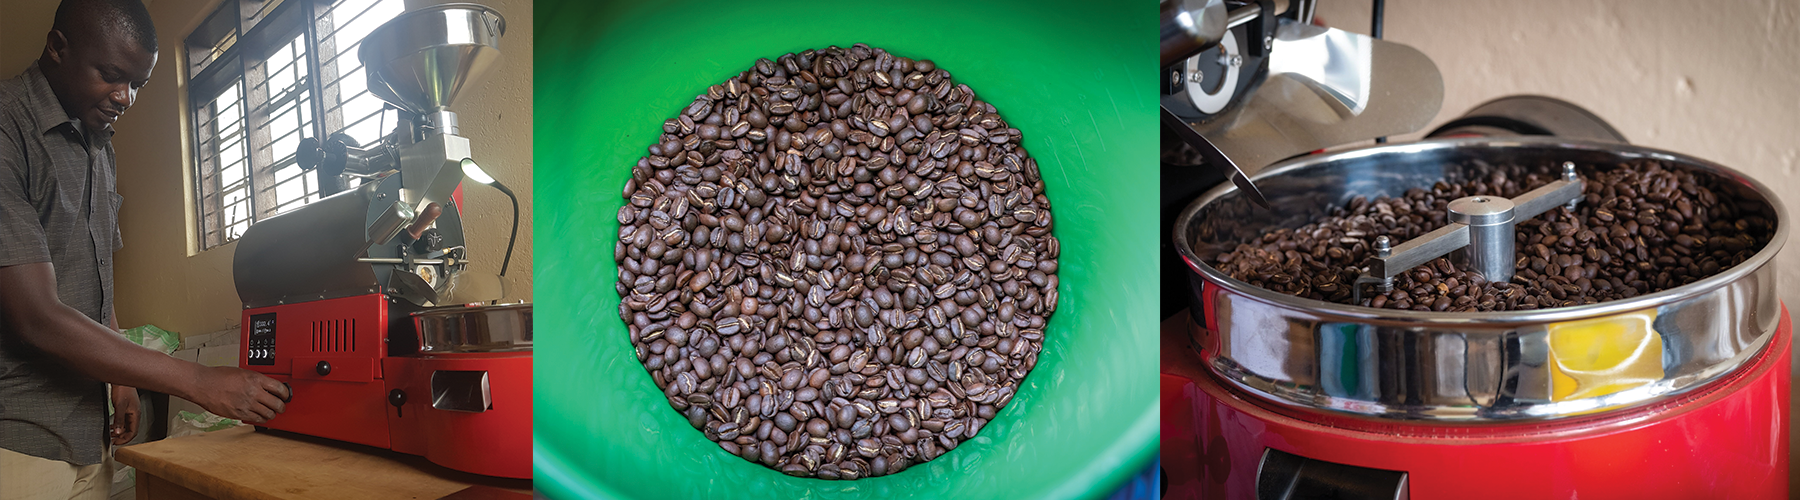 coffee-roasting-evergreen-africa-charity